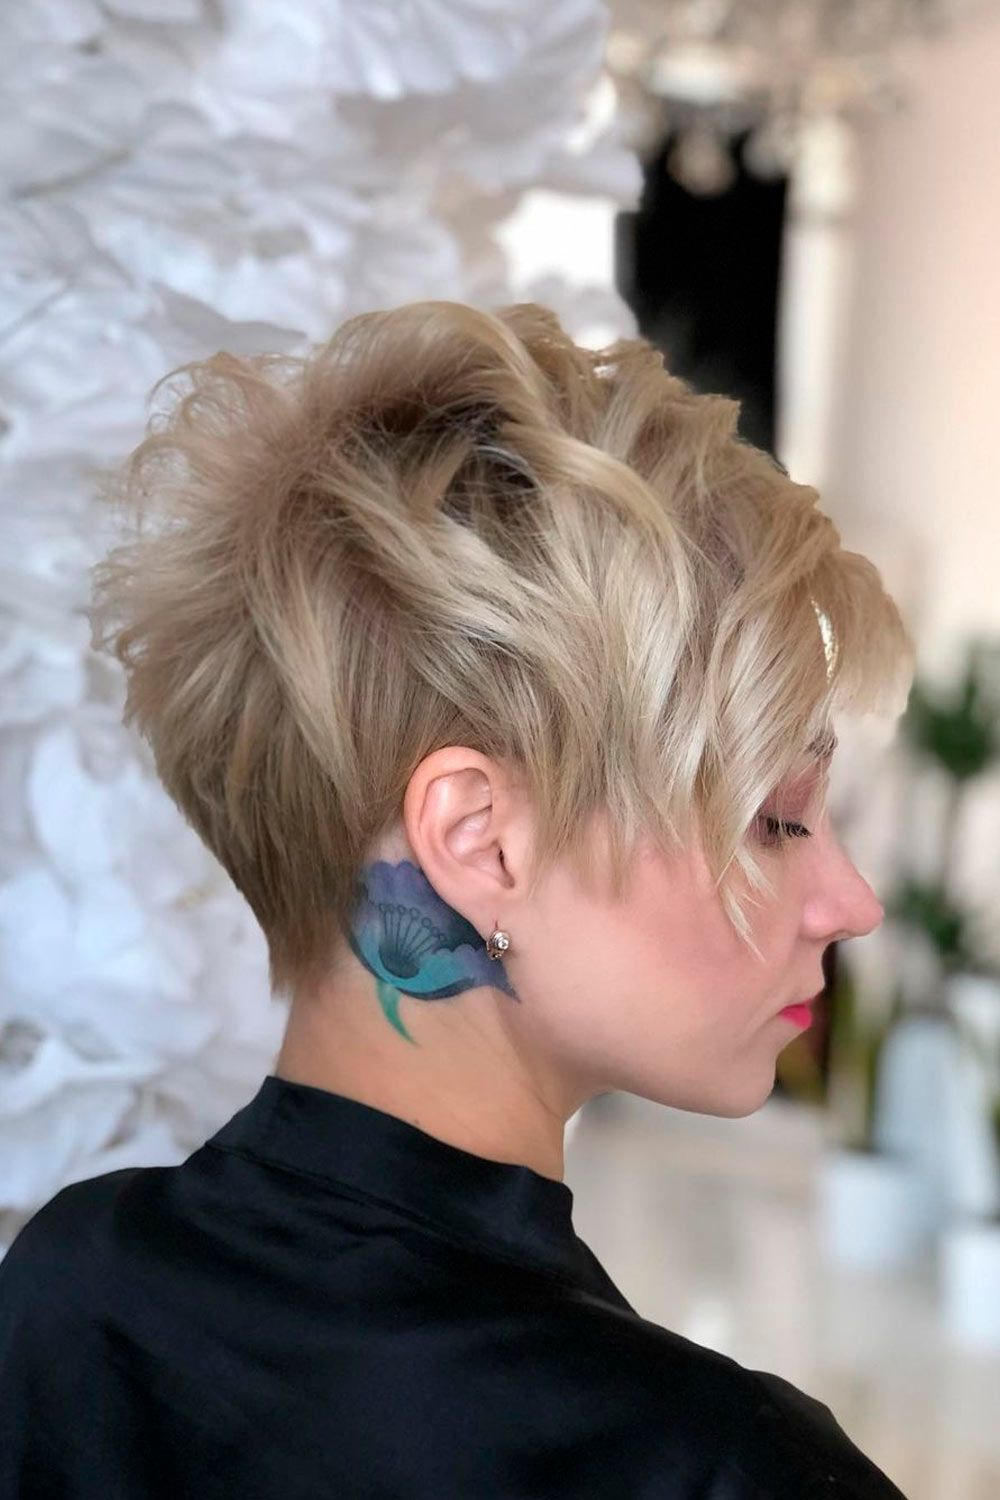 Pixie Cut For Short Curly Hair